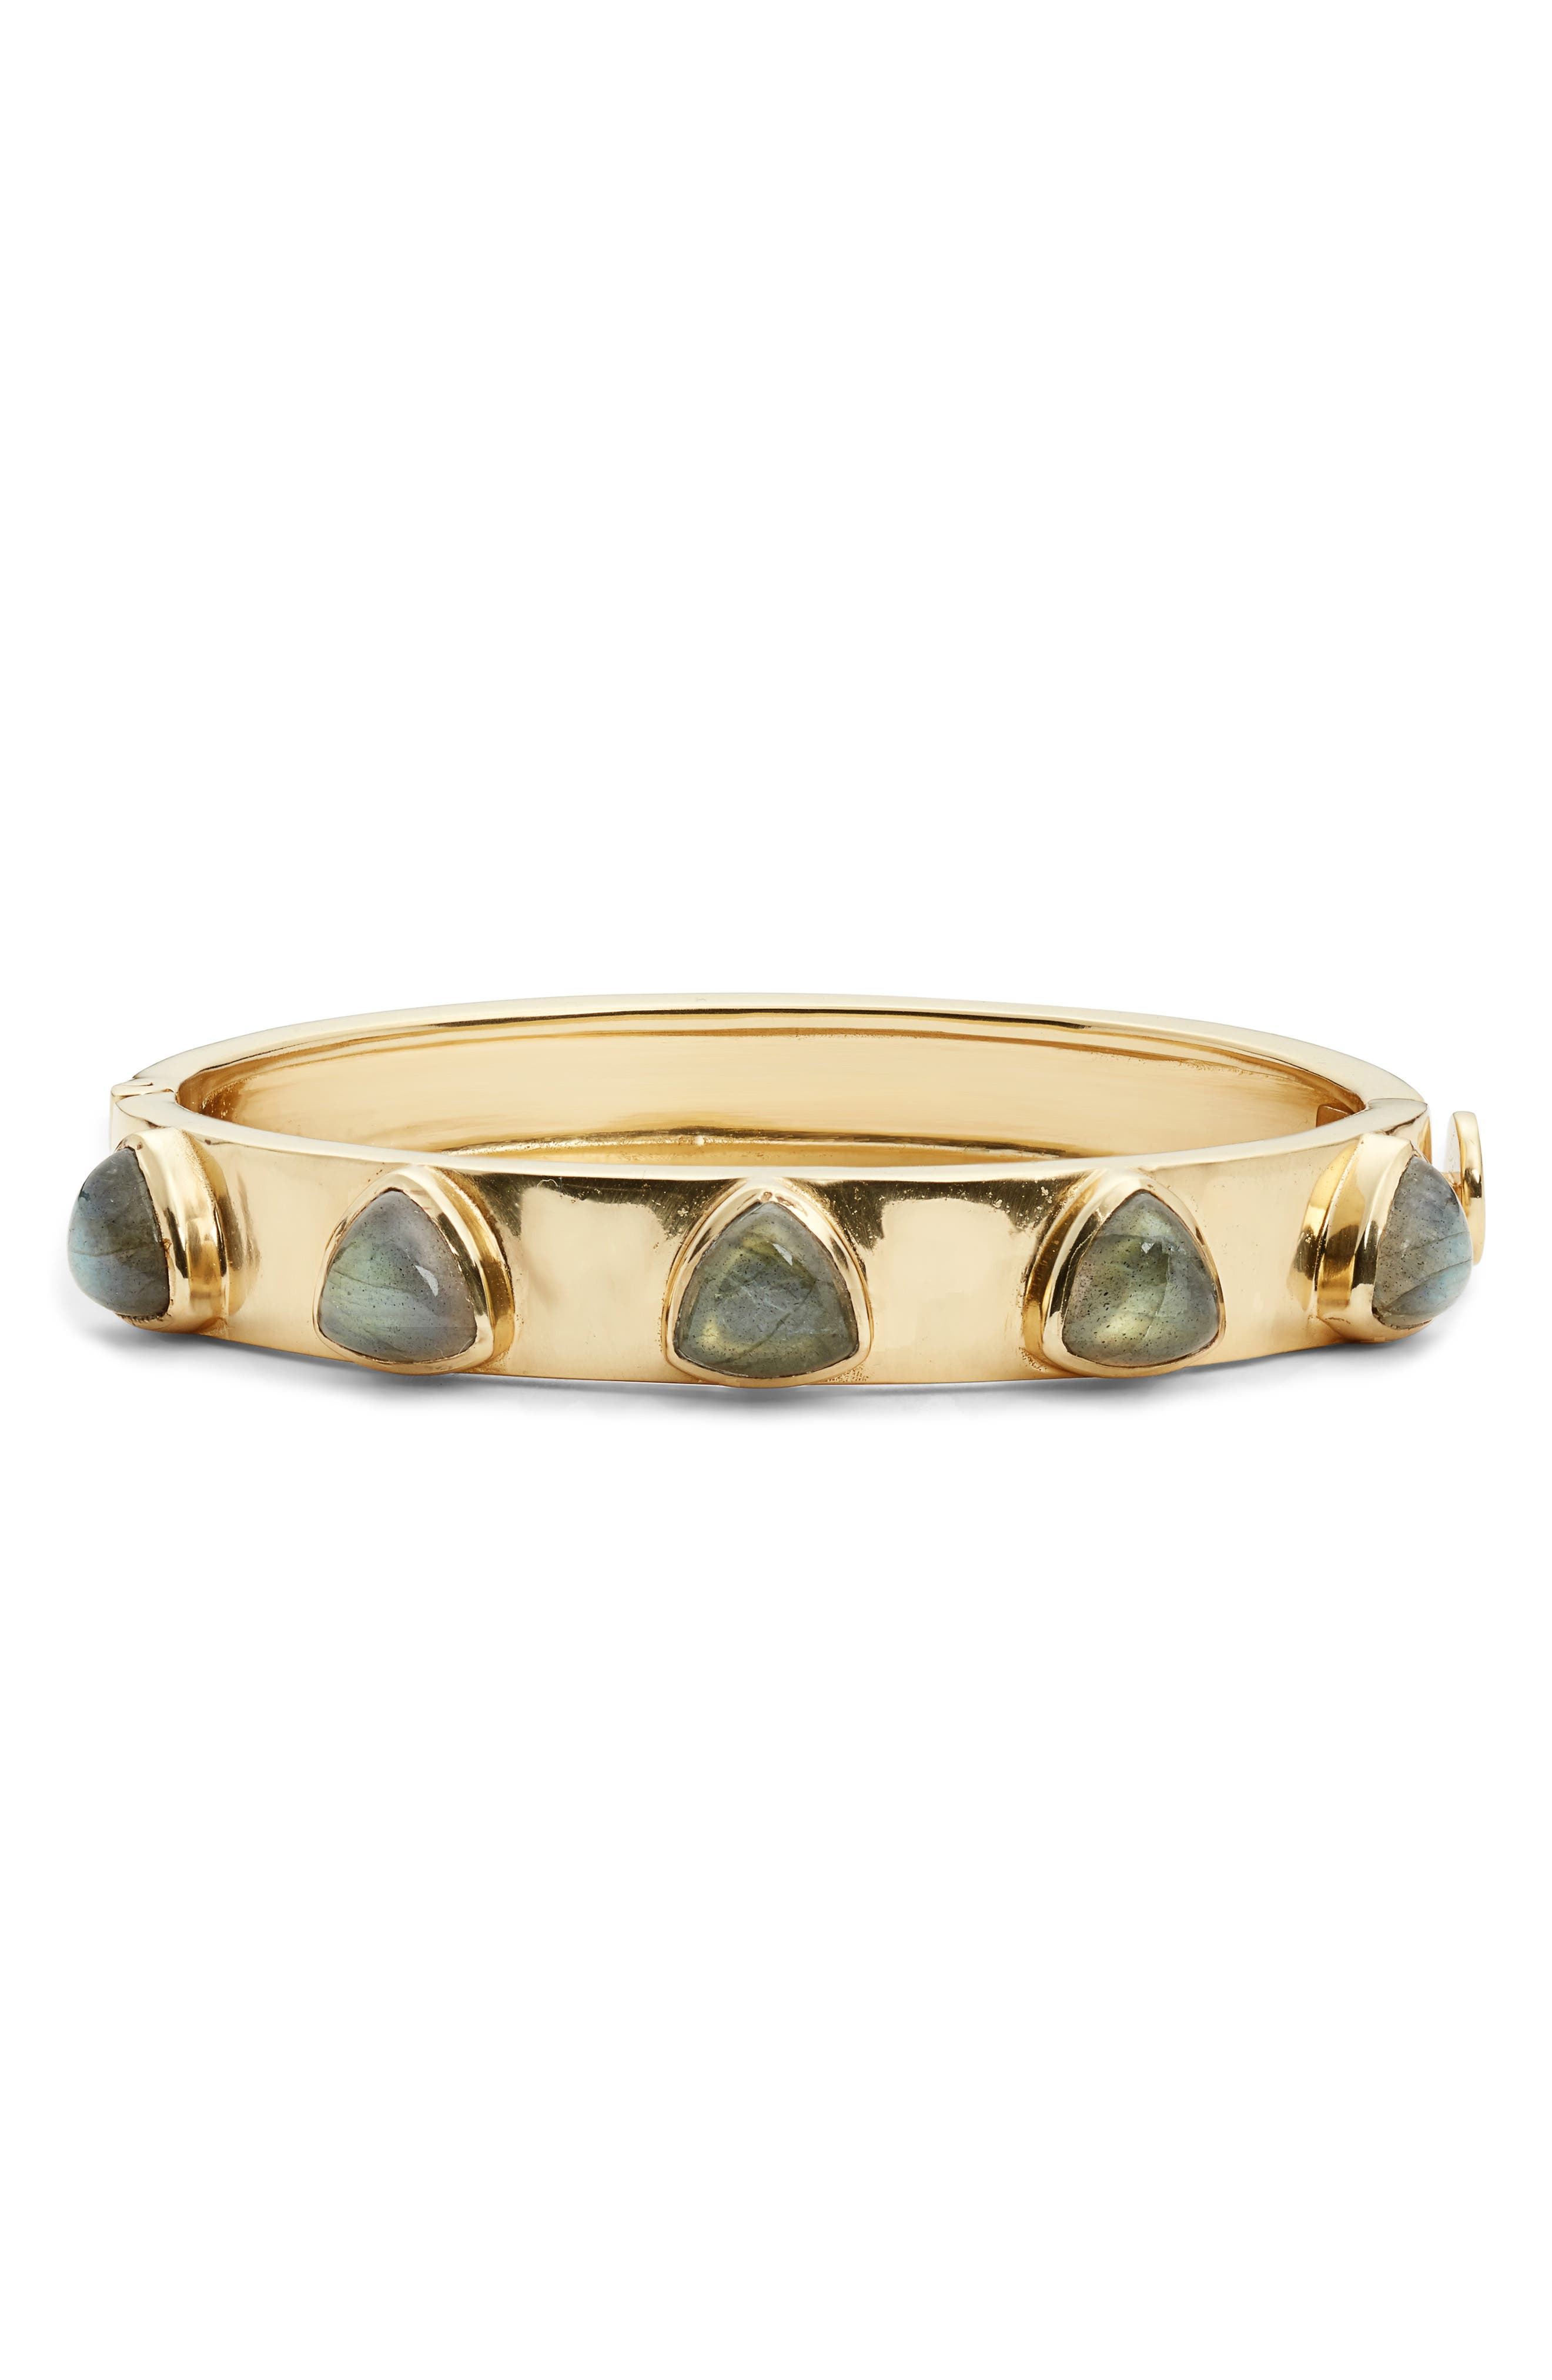 Stone Studded Cuff,                             Main thumbnail 1, color,                             710